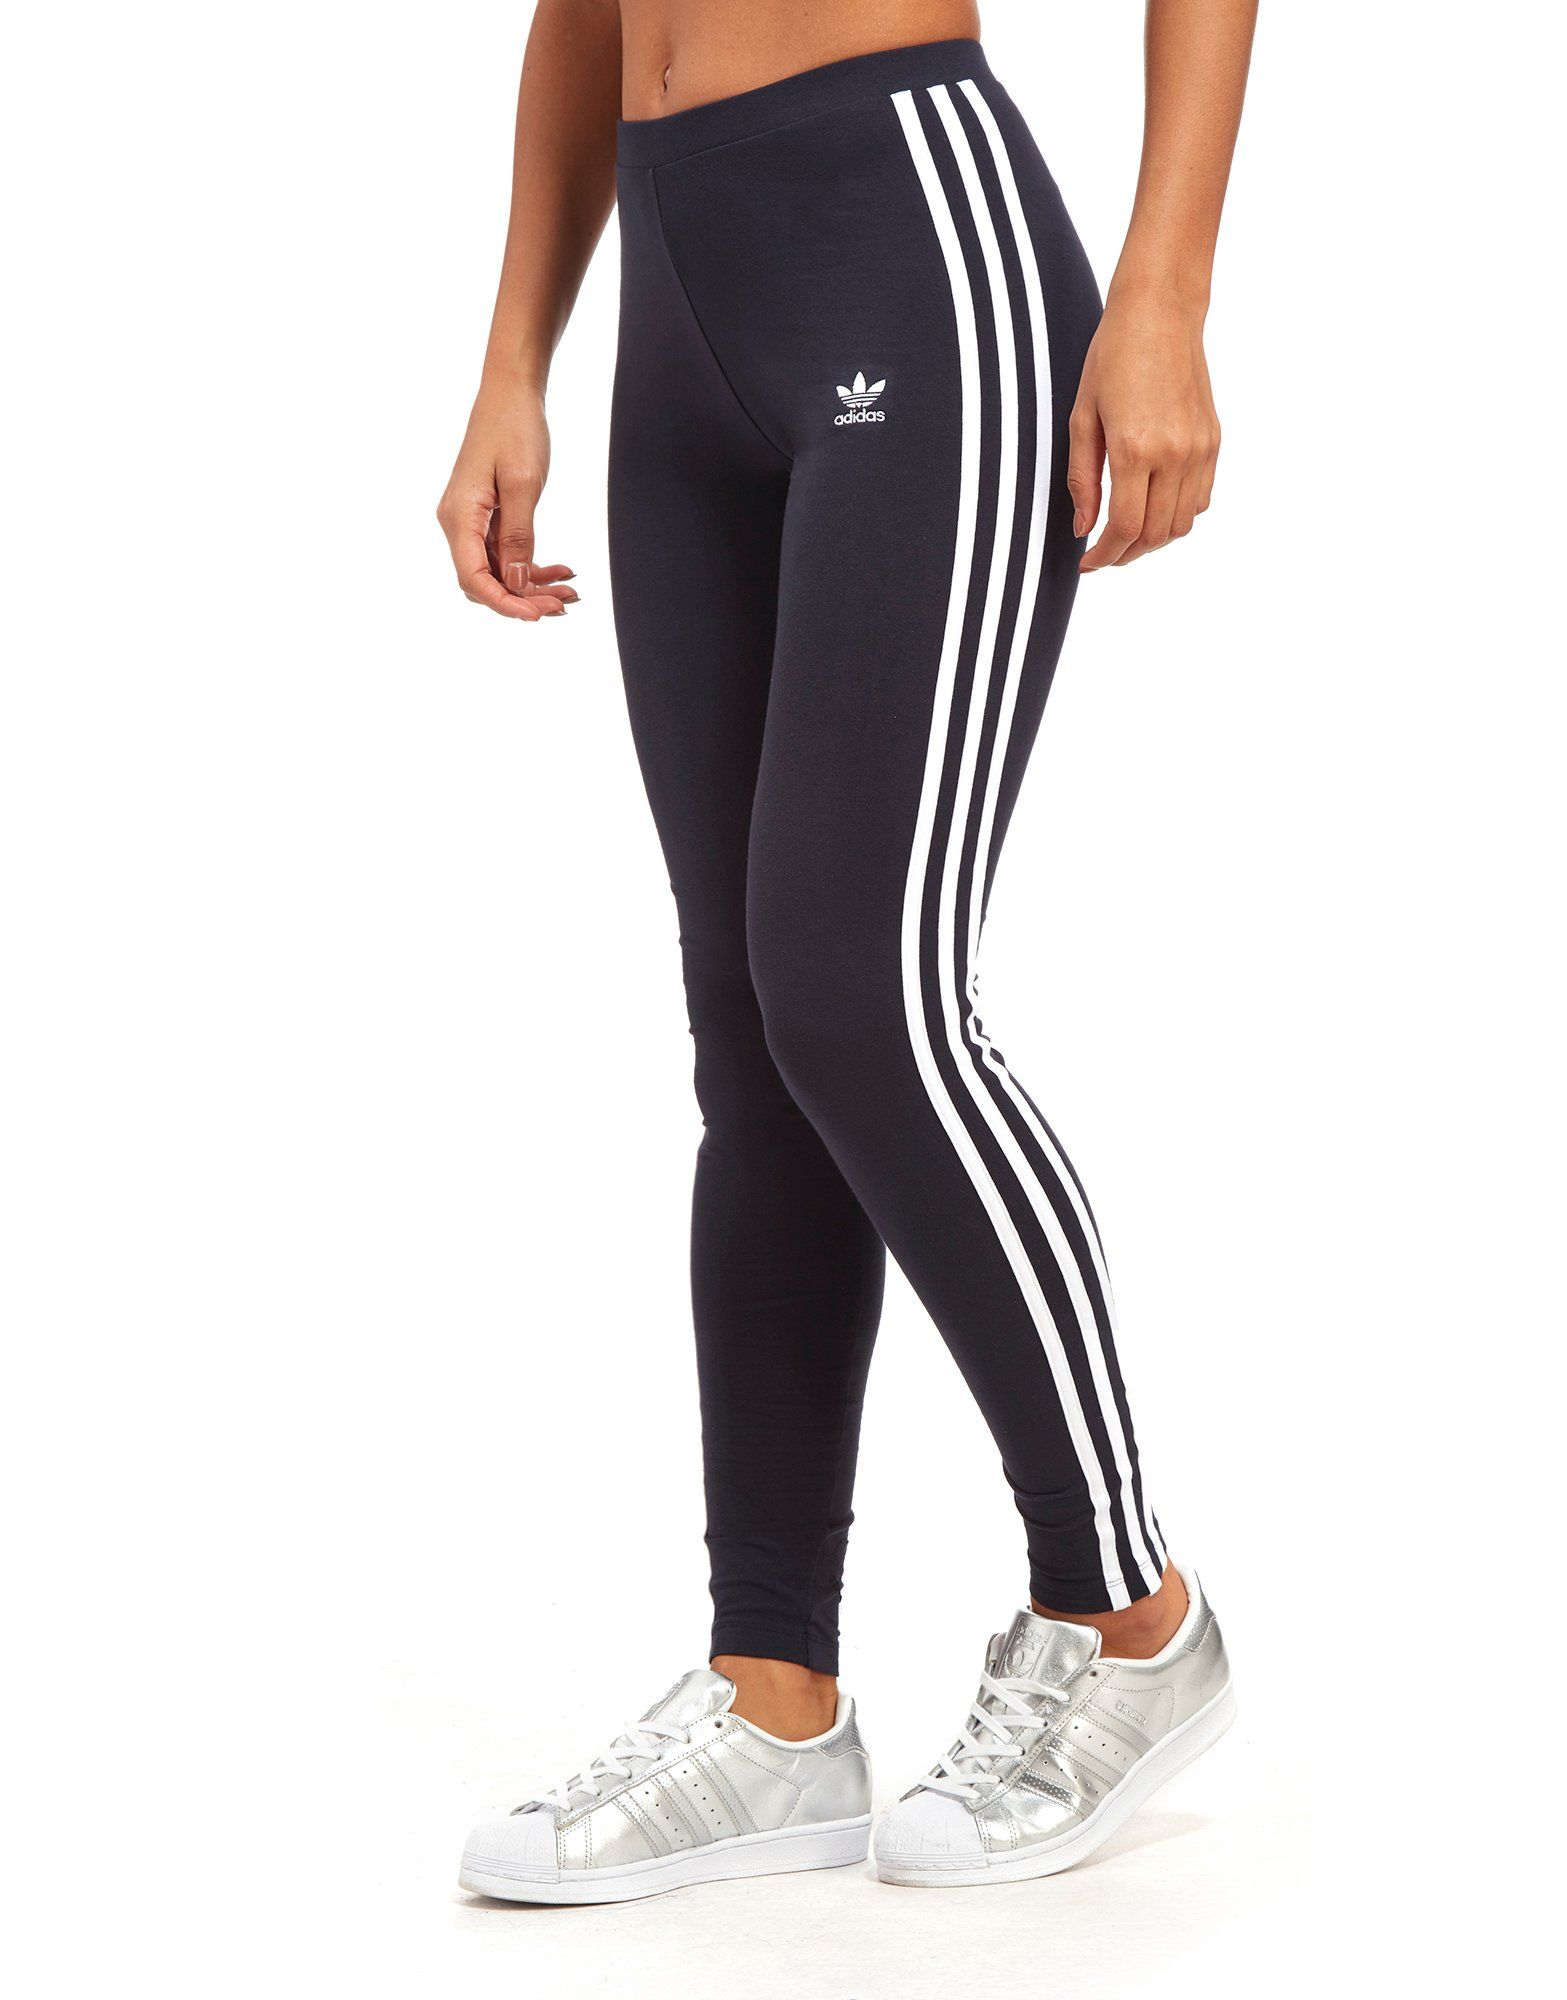 Womens Adidas Leggings l-d-c.co.uk